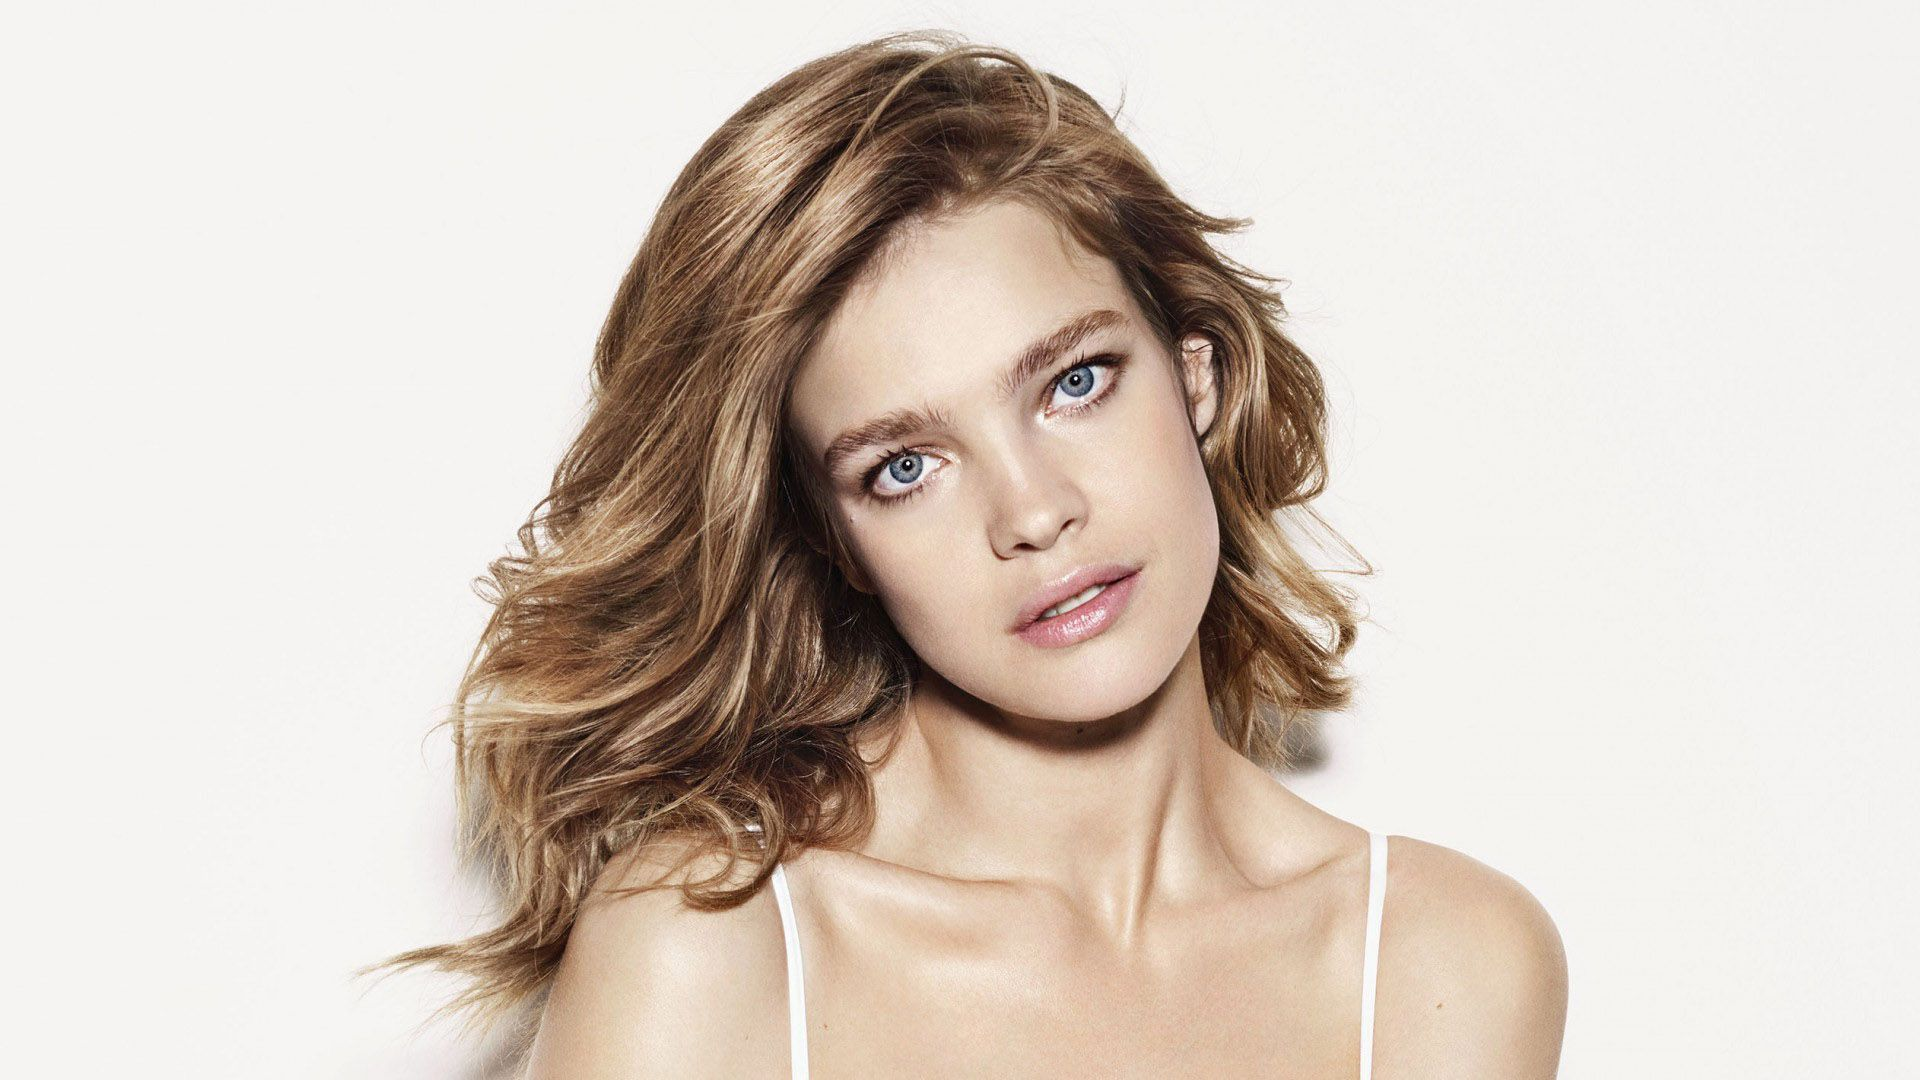 Natalia Vodianova For Desktop